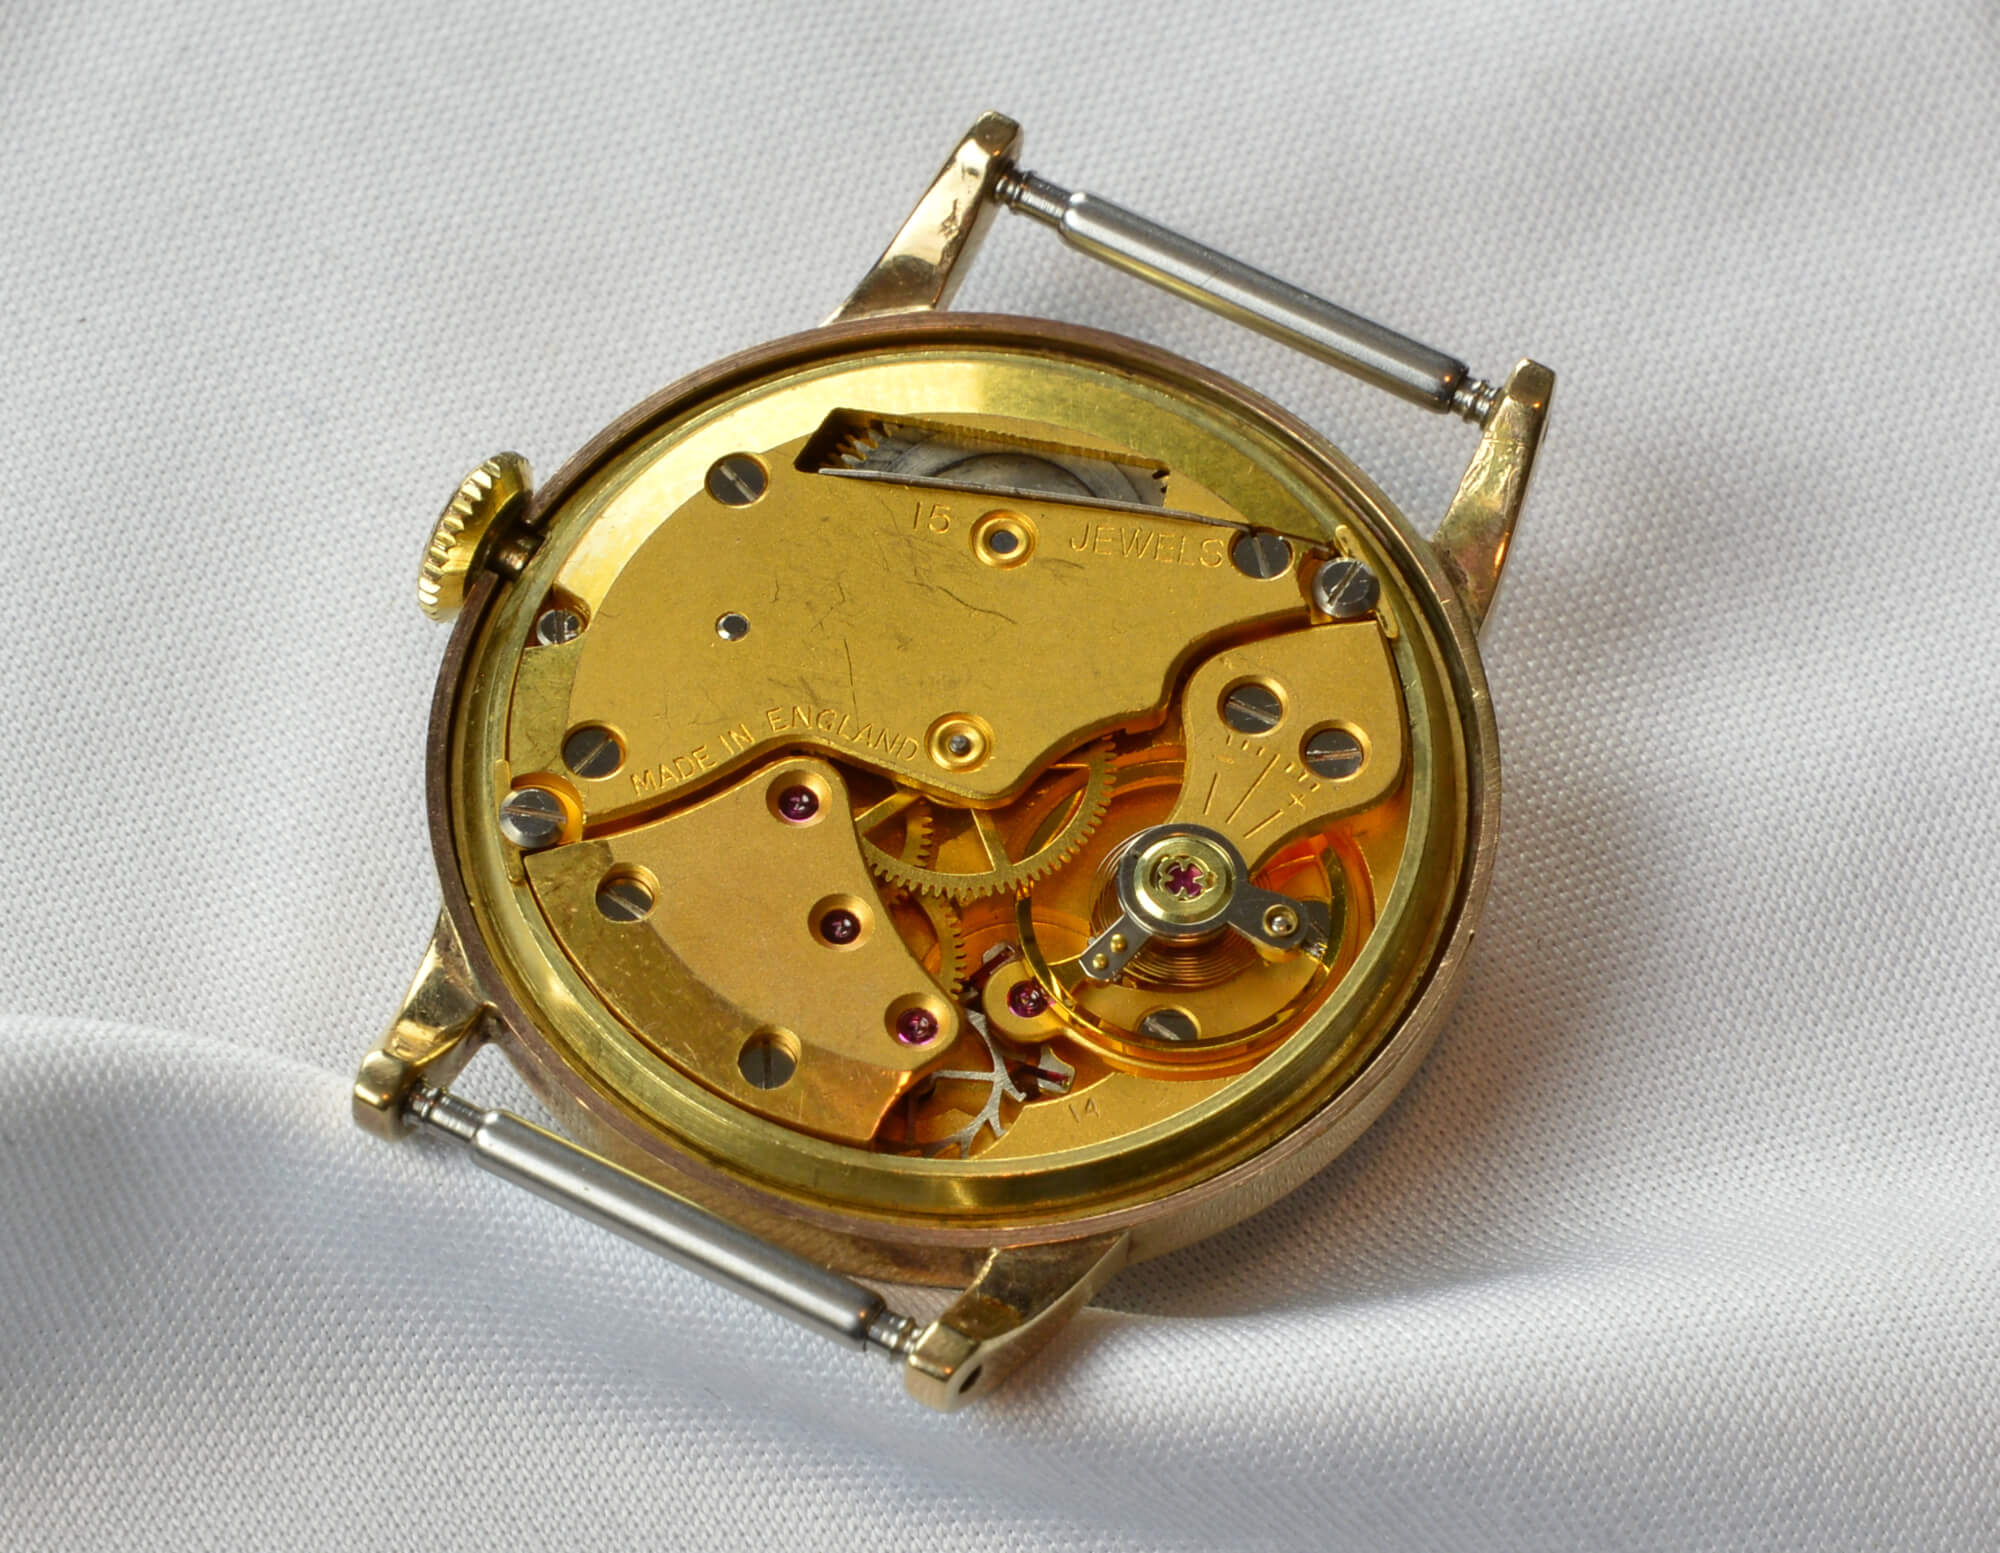 buying-gold-watches-tips-15